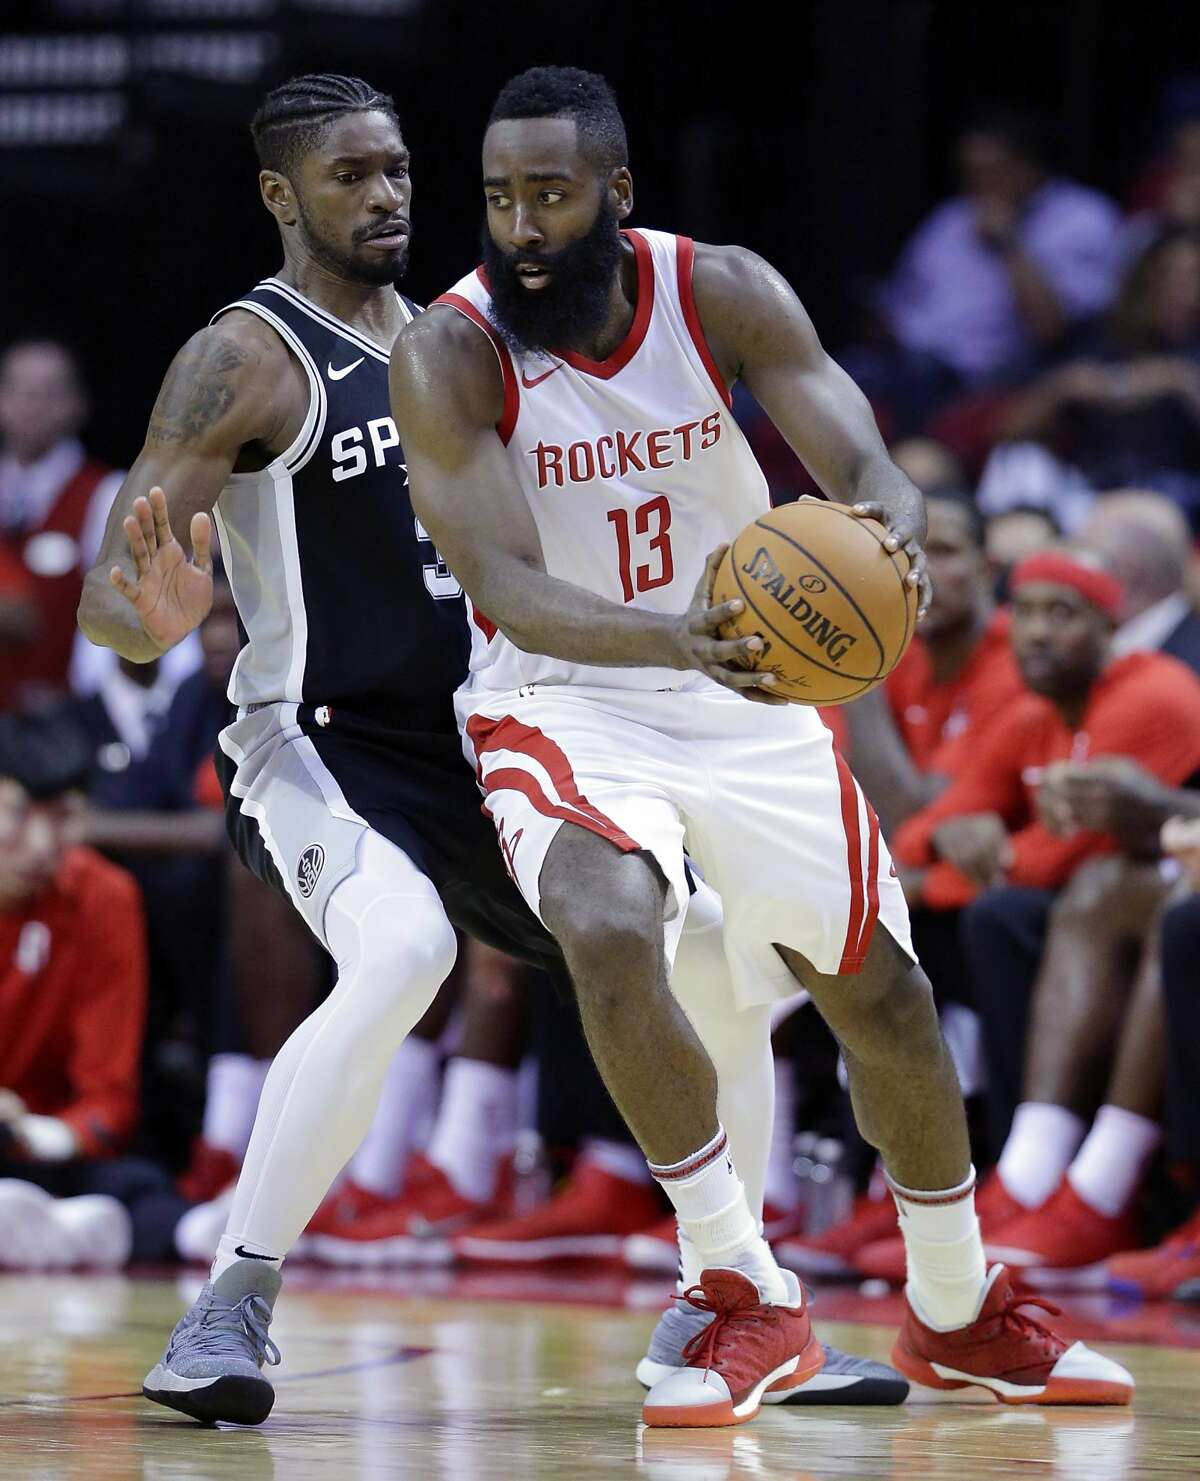 San Antonio Spurs guard Brandon Paul (3) defends as Houston Rockets guard James Harden (13) drives around him in the second half of an NBA preseason basketball game Friday, Oct. 13, 2017, in Houston. (AP Photo/Michael Wyke)